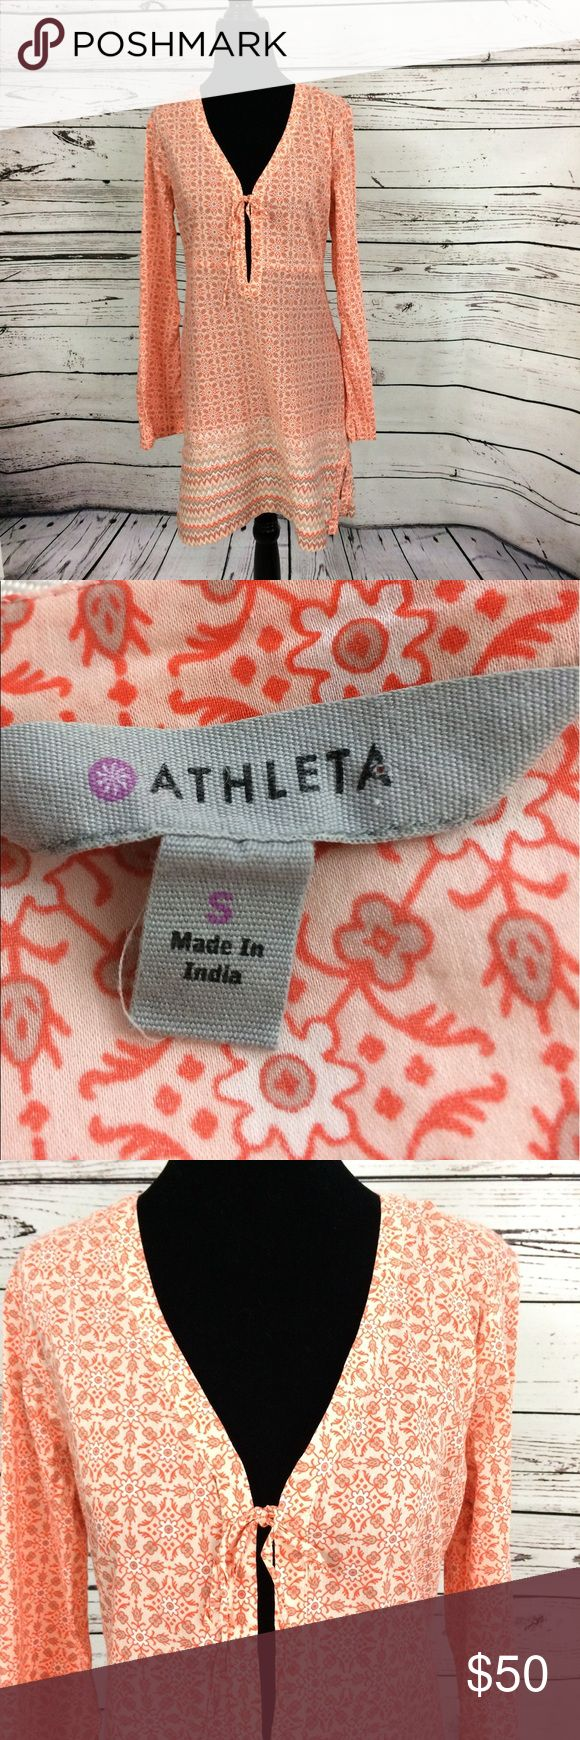 Athleta beach dress size small Athleta orange and grey beach dress with stretch. Tie front super cute over  your suit or just as a casual outfit. Size small Athleta Dresses